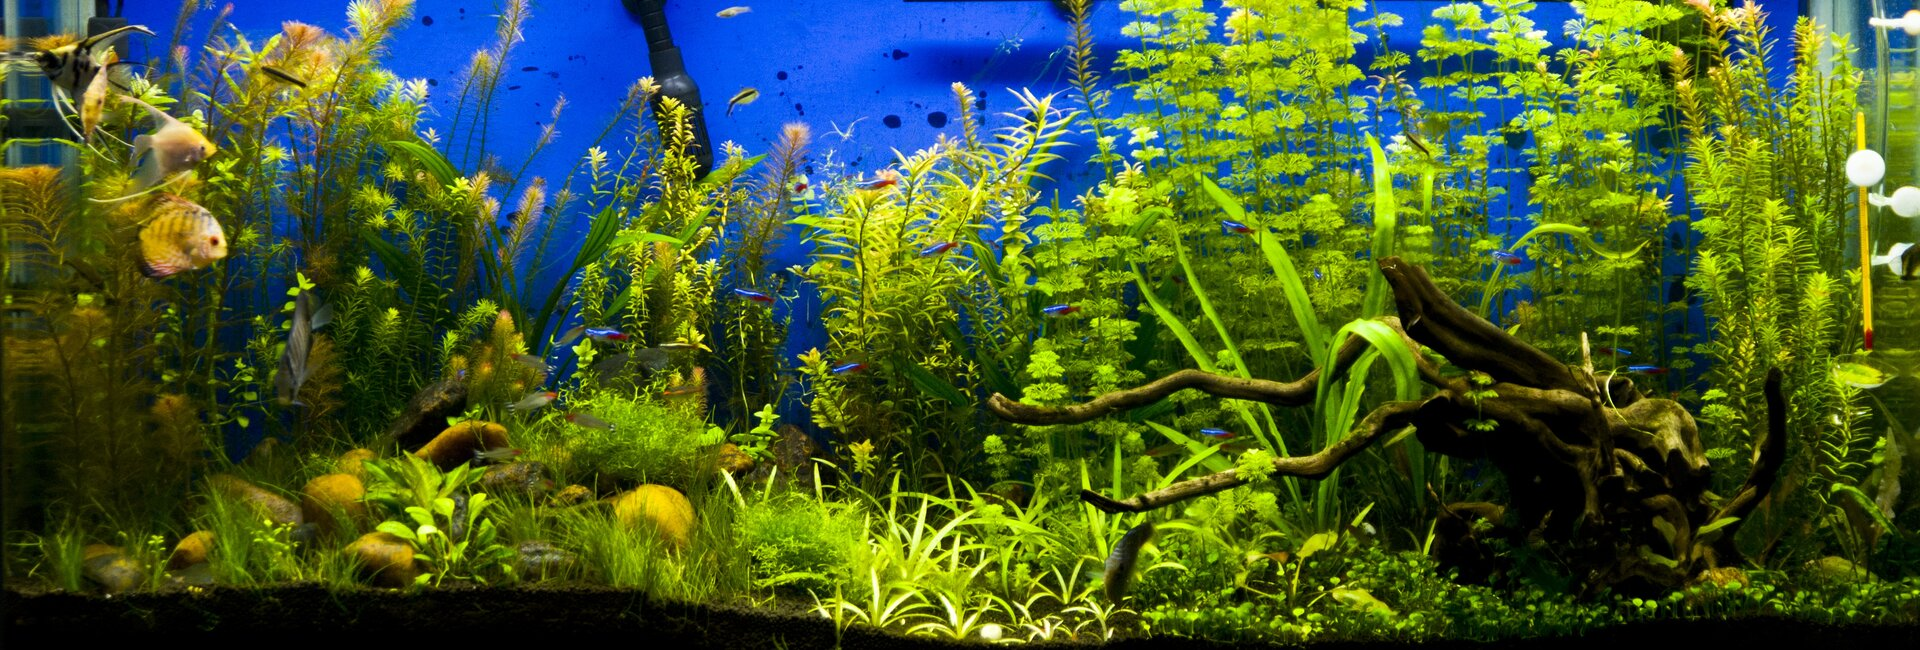 Freshwater aquarium fish angelfish - Freshwater Aquarium Fish Angelfish